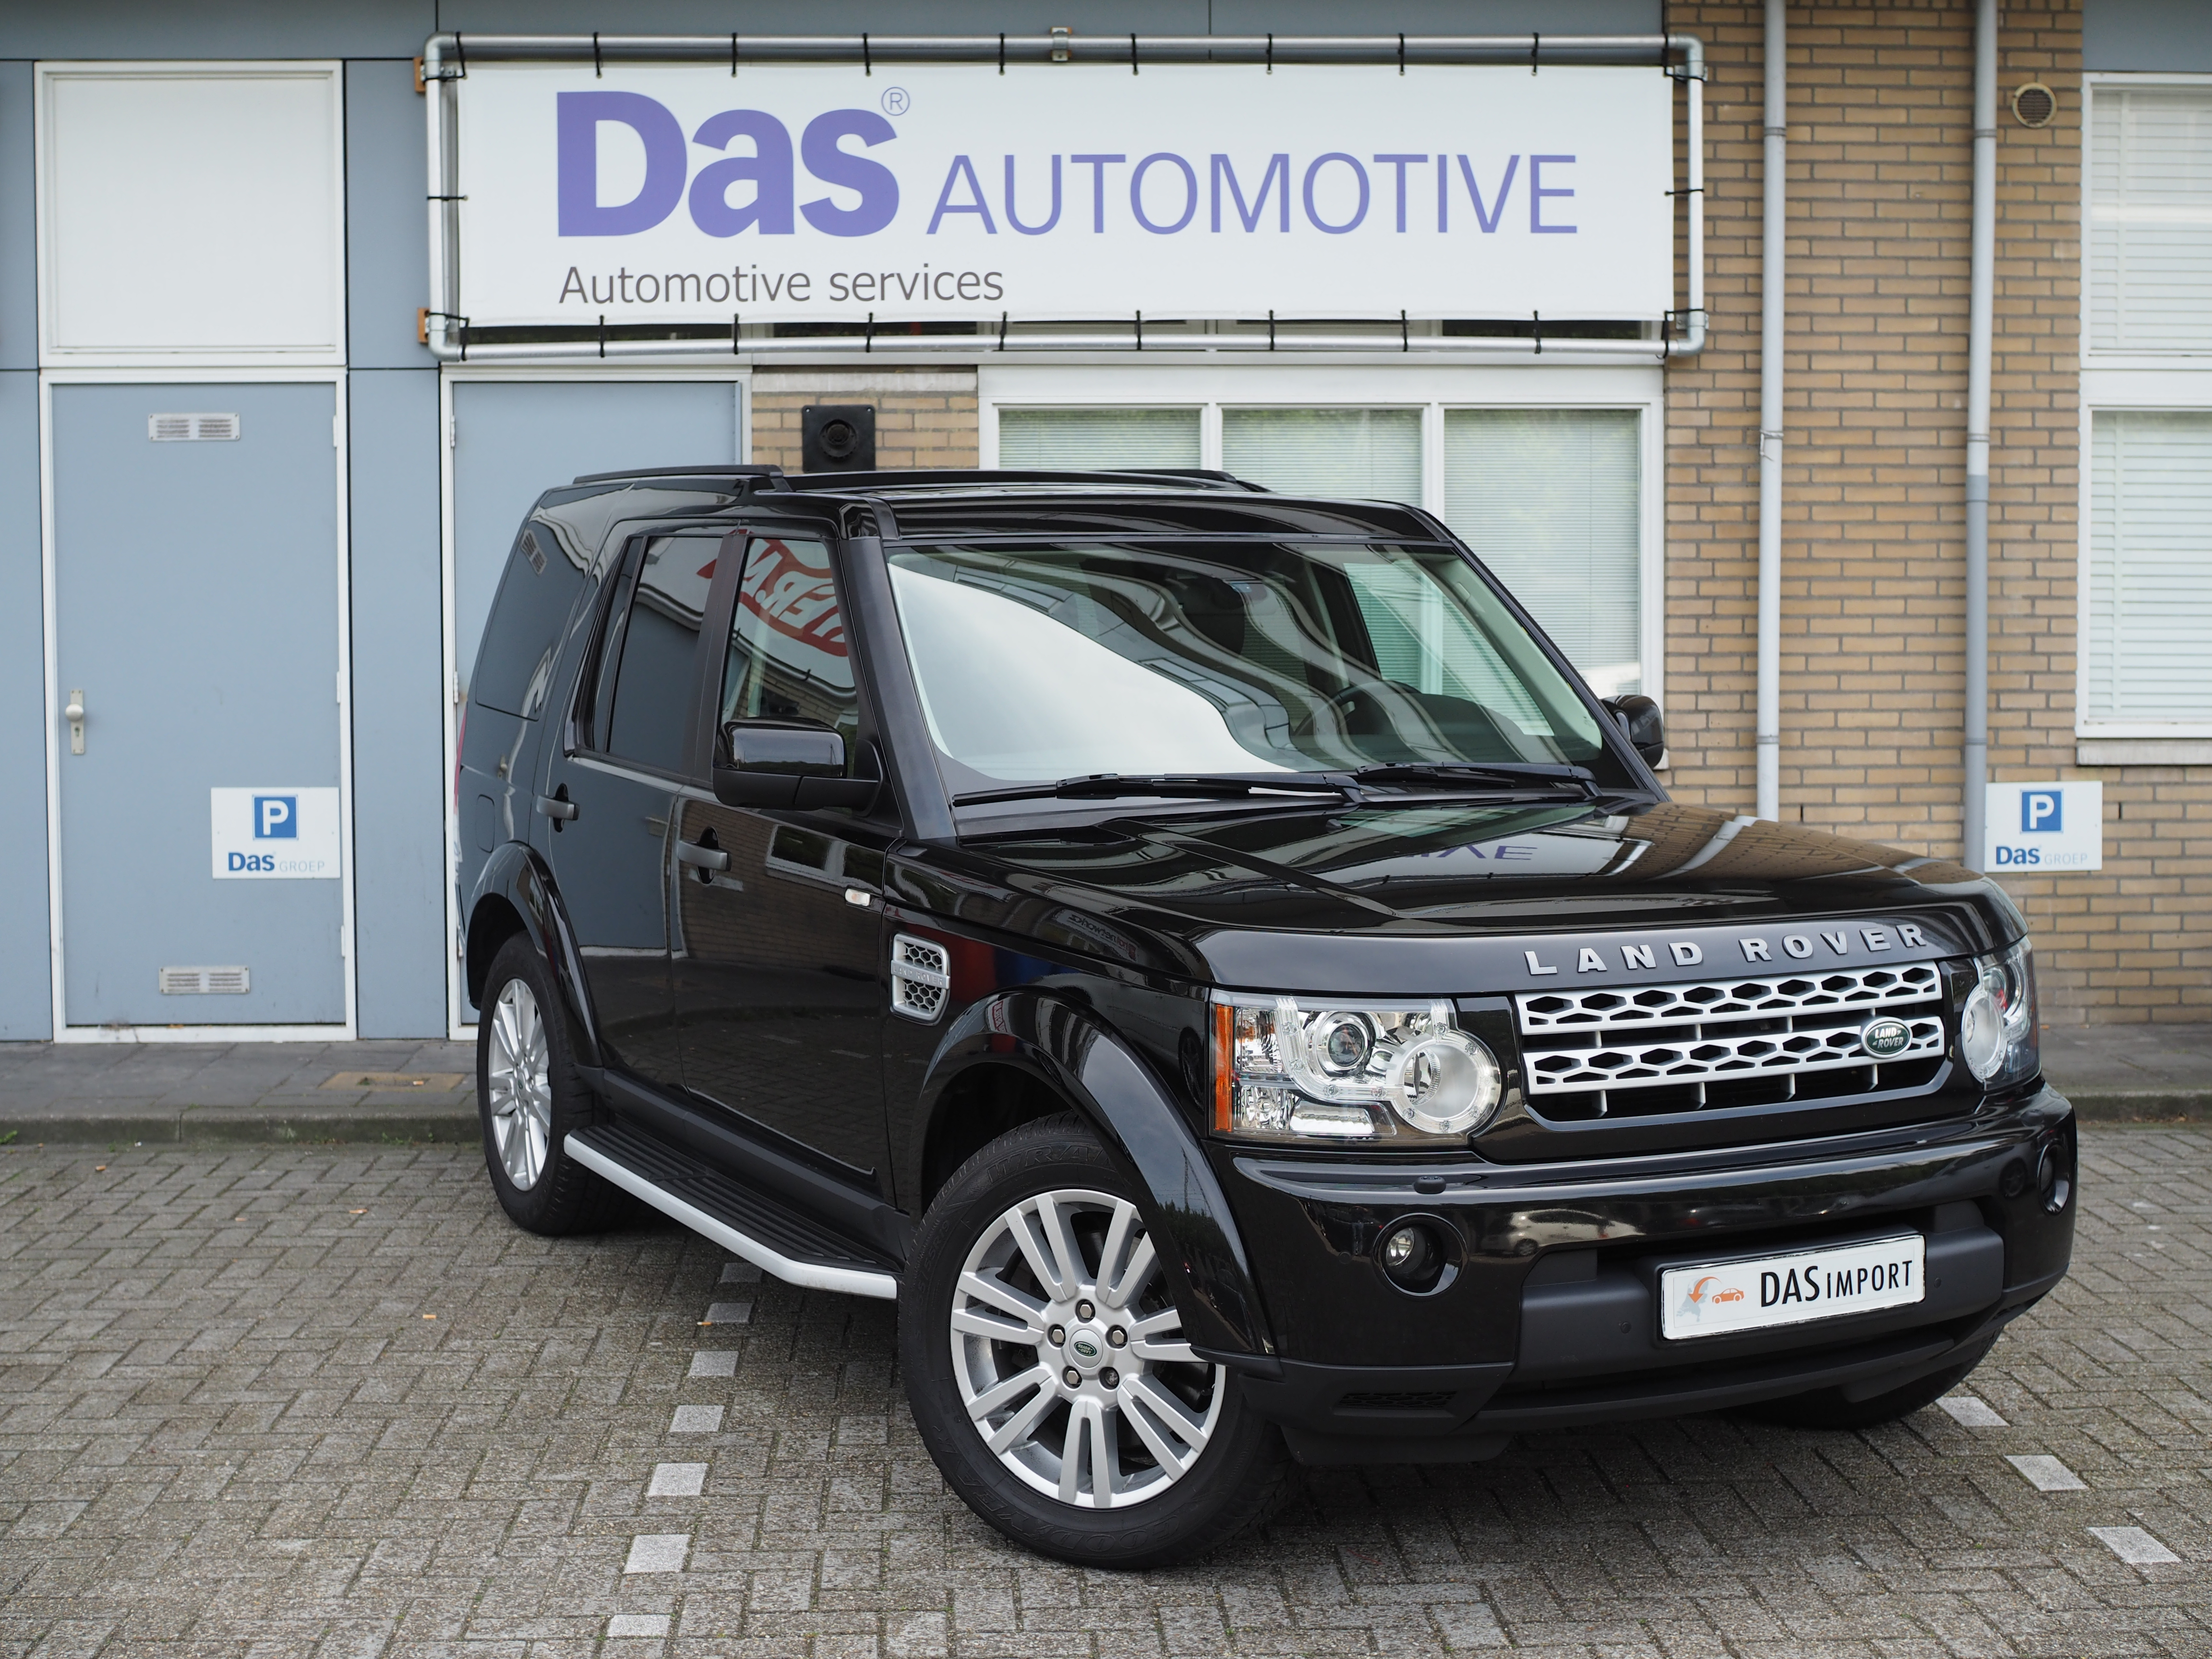 Importauto: Land Rover Discovery 4 Diesel SDV6 3.0 HSE Aut. 5/2011